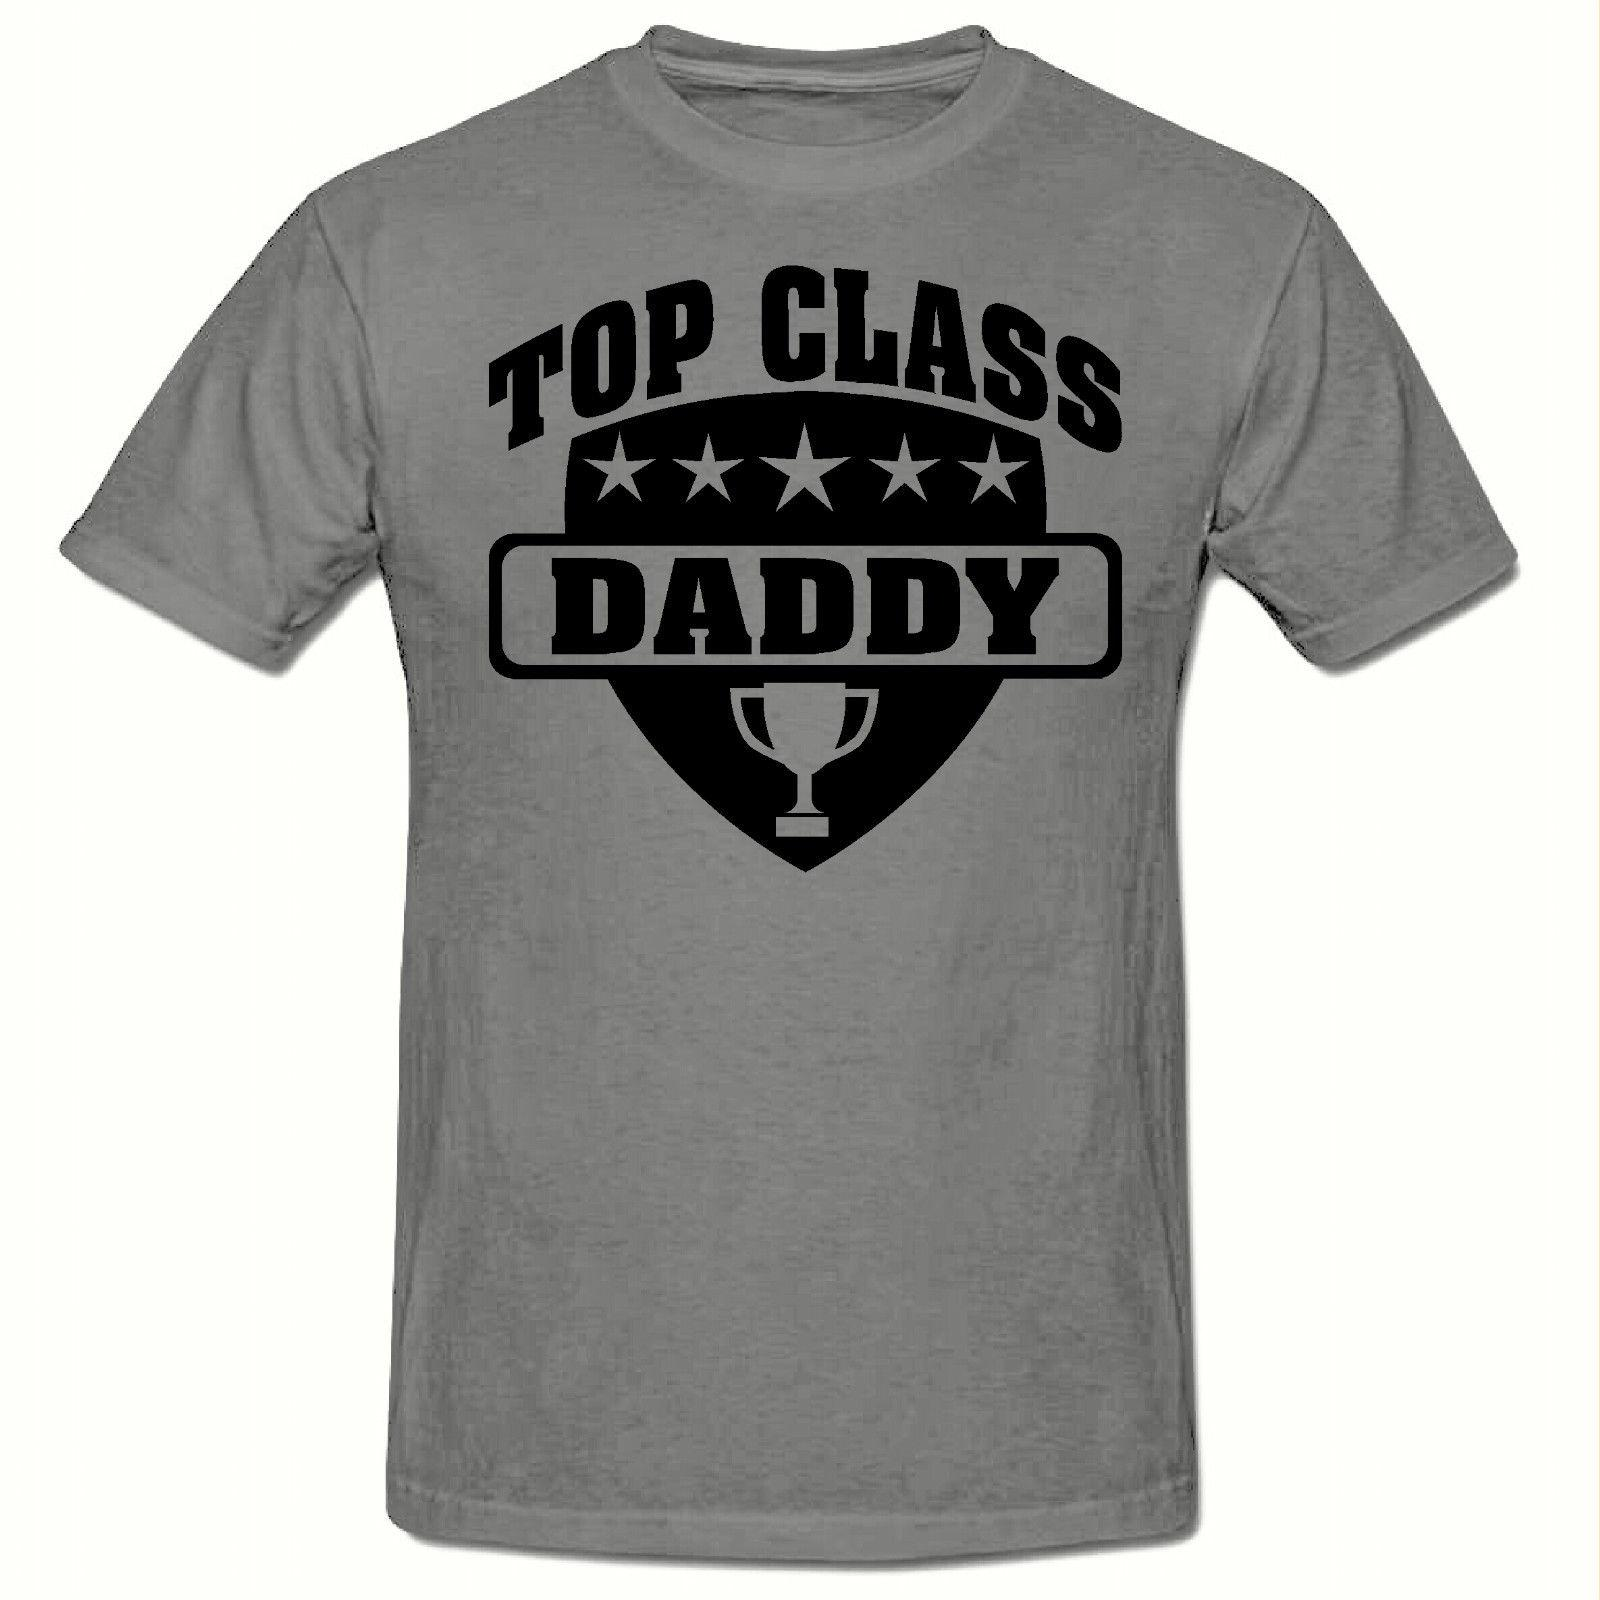 d99a9ee4d TOP CLASS DADDY T SHIRT, FUNNY NOVELTY MEN'S T SHIRT,SM-2XL New  Brand-Clothing Tee 2018 Hipster O-Neck Cool Tops